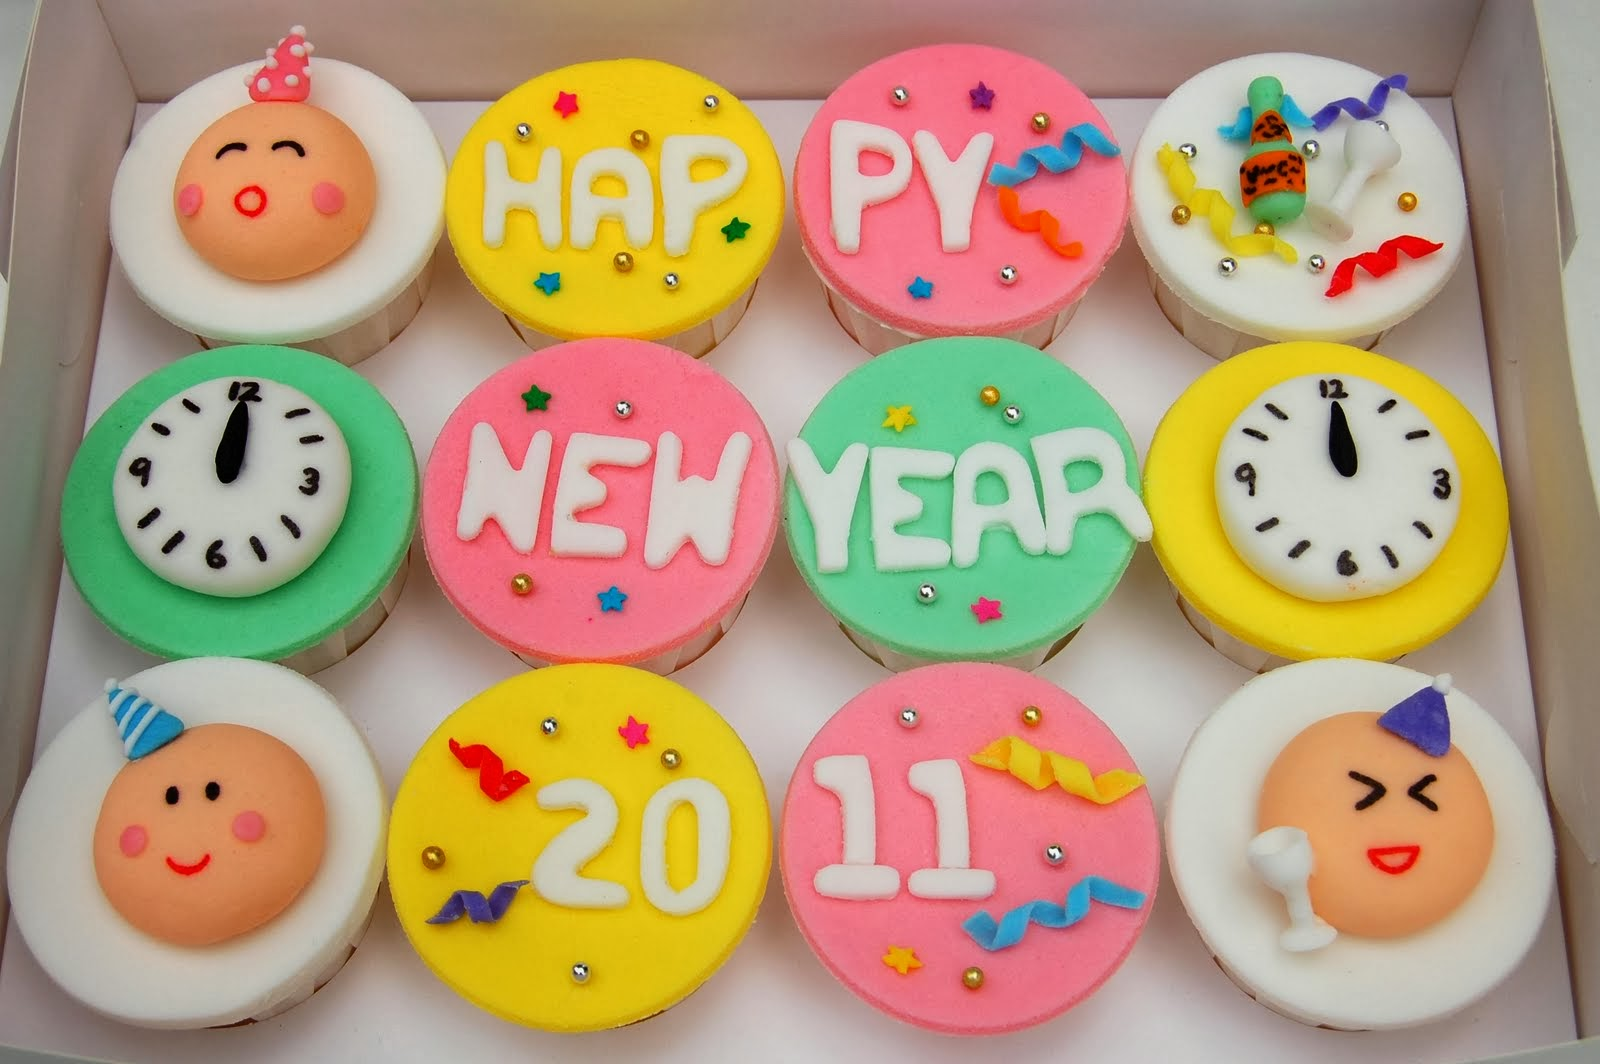 Cupcake Decorating Ideas New Years Eve : CupcakeLovers: New Years Fancy Cupcake Decoration